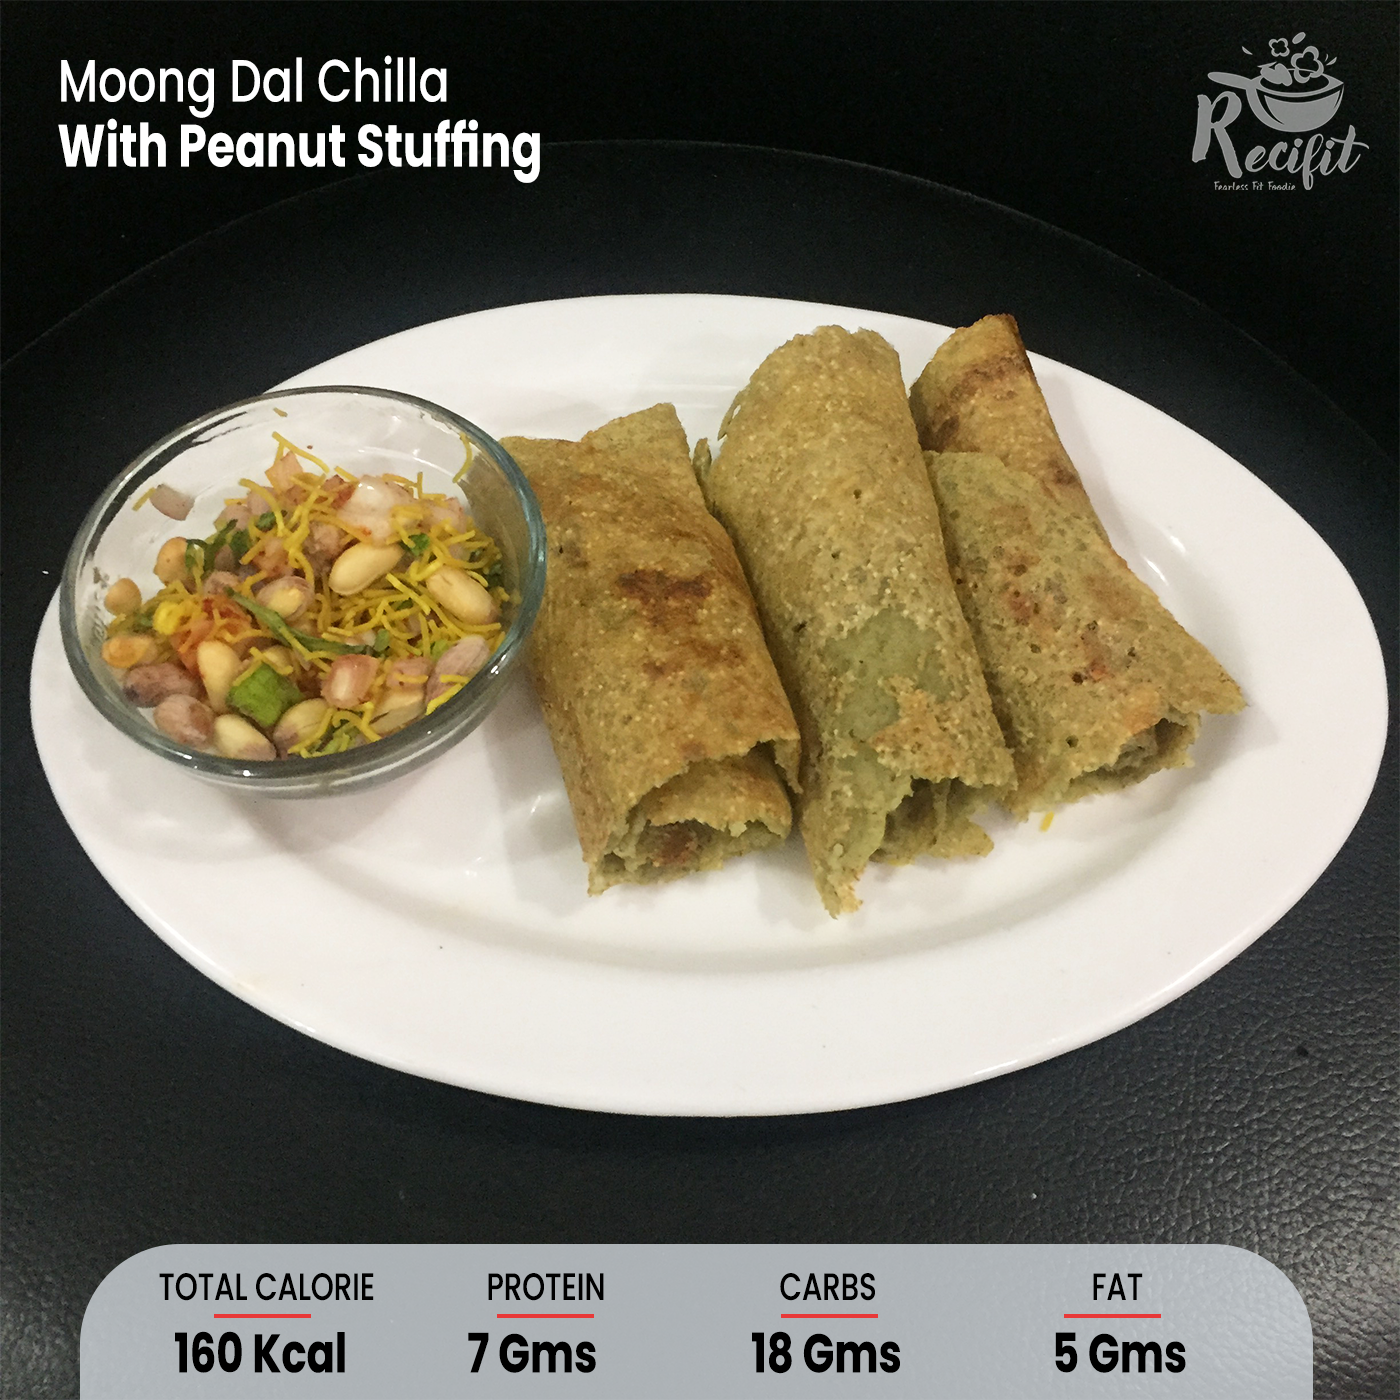 Moong Dal Chilla With Peanut Stuffing